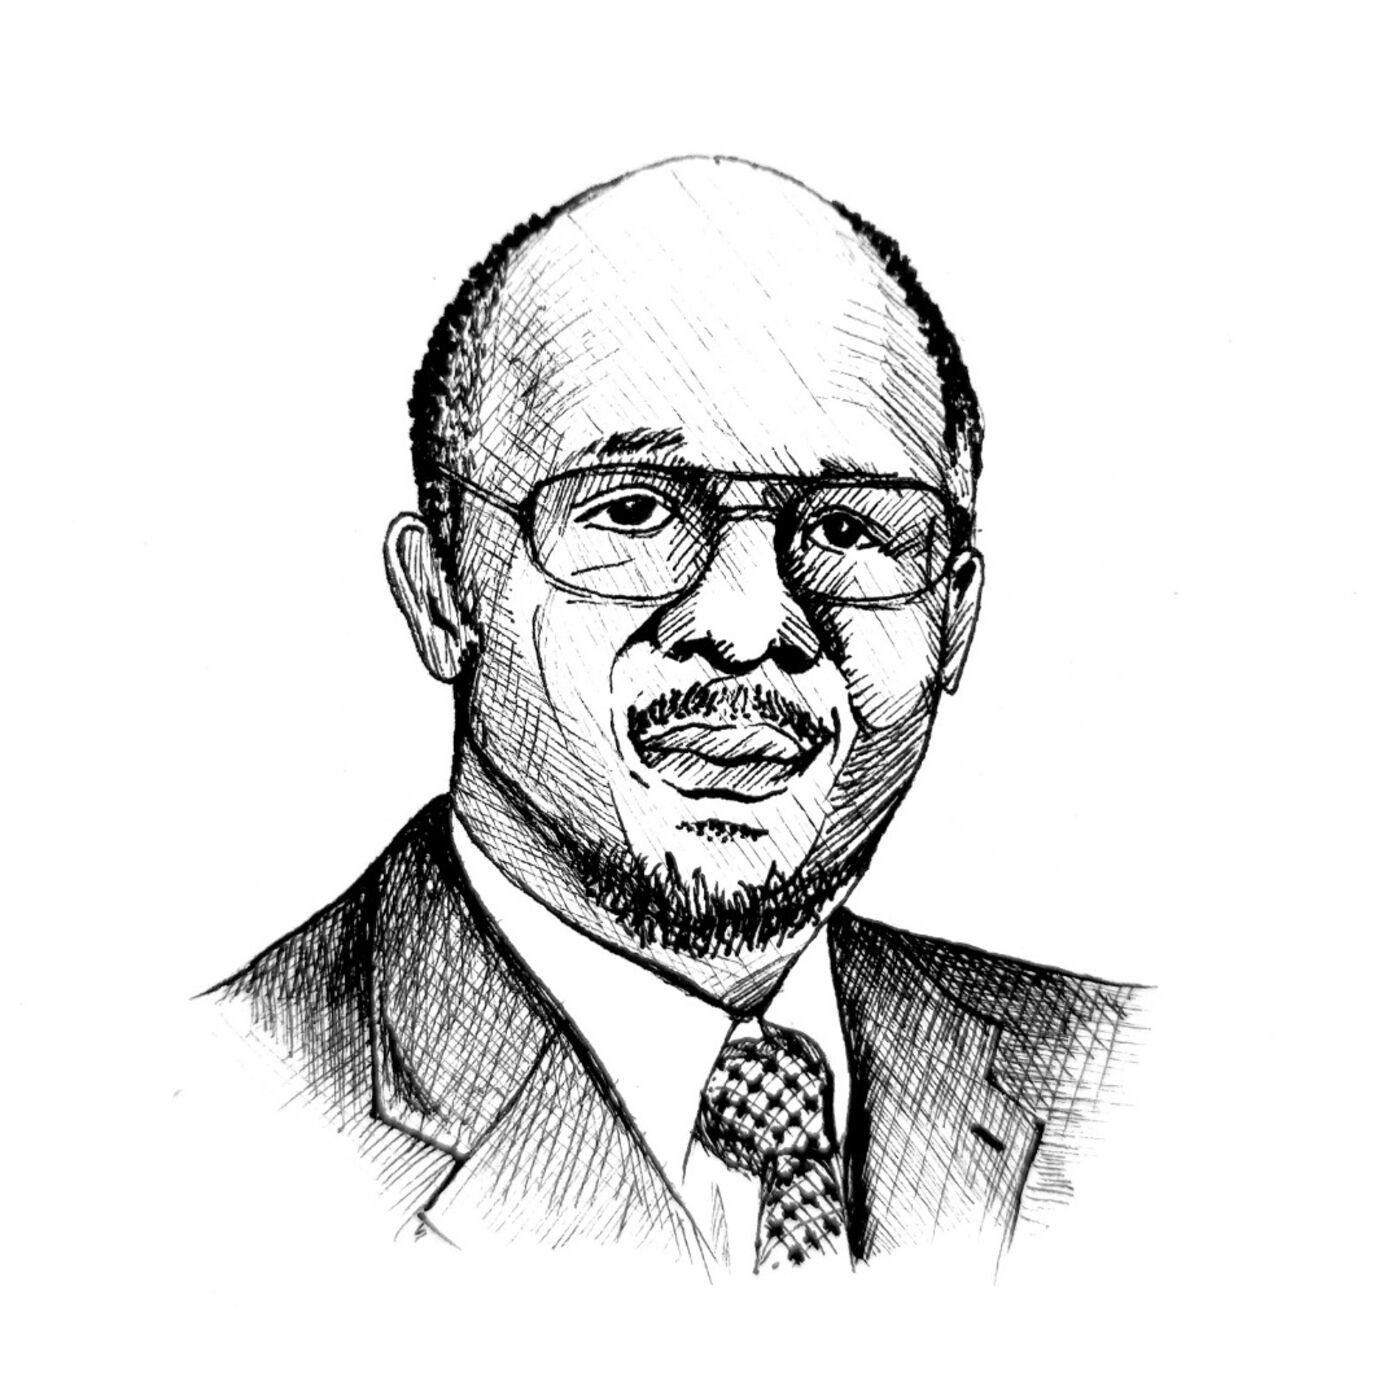 Episode 8: William B. Allen & building a national character